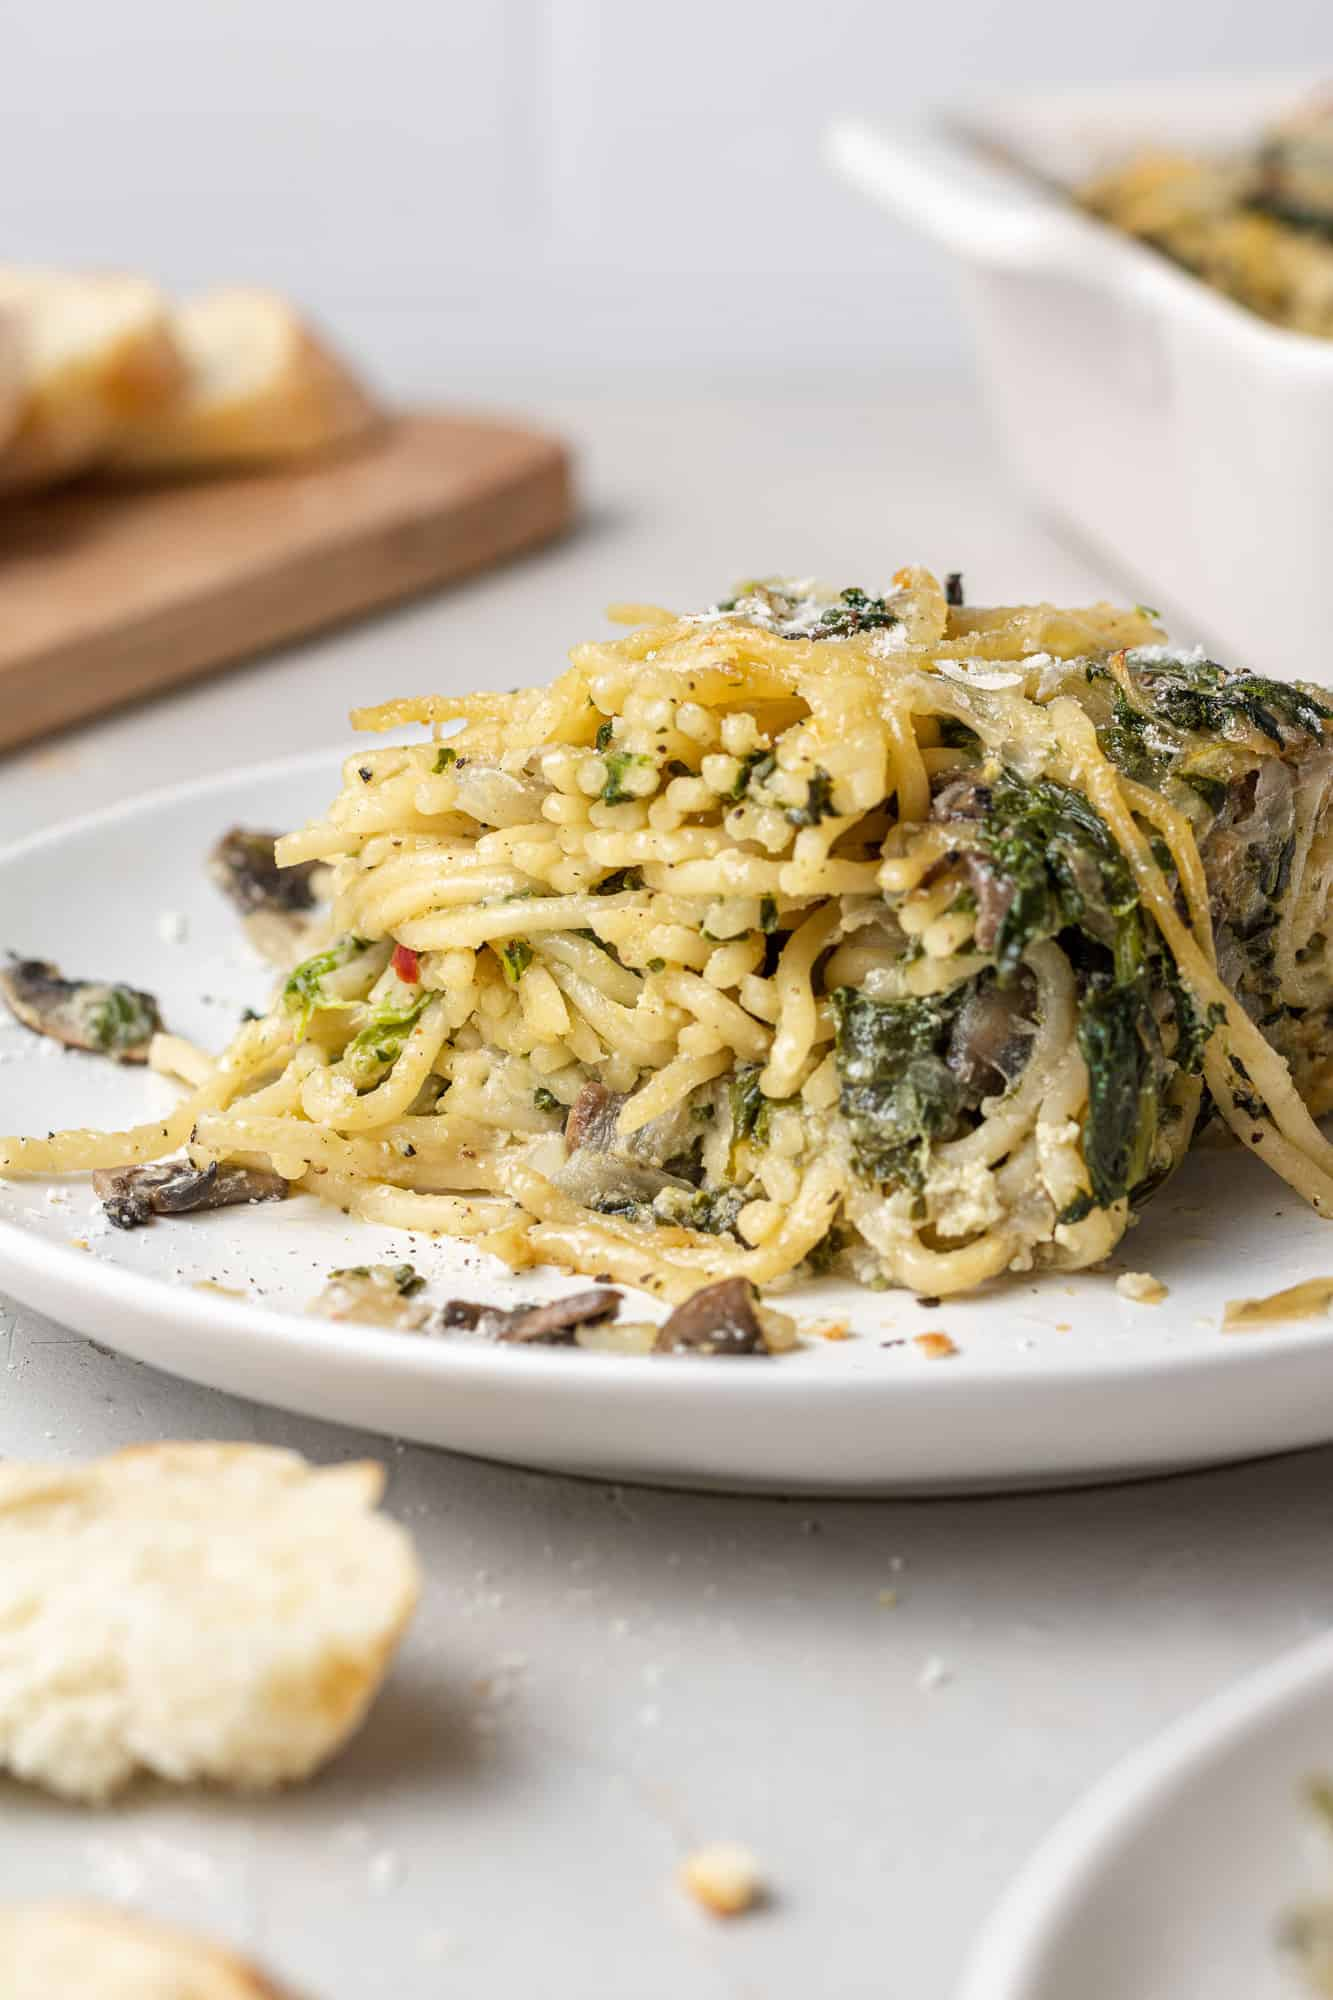 Close up of spaghetti mixed with spinach, cheese, and mushrooms on a small white plate.